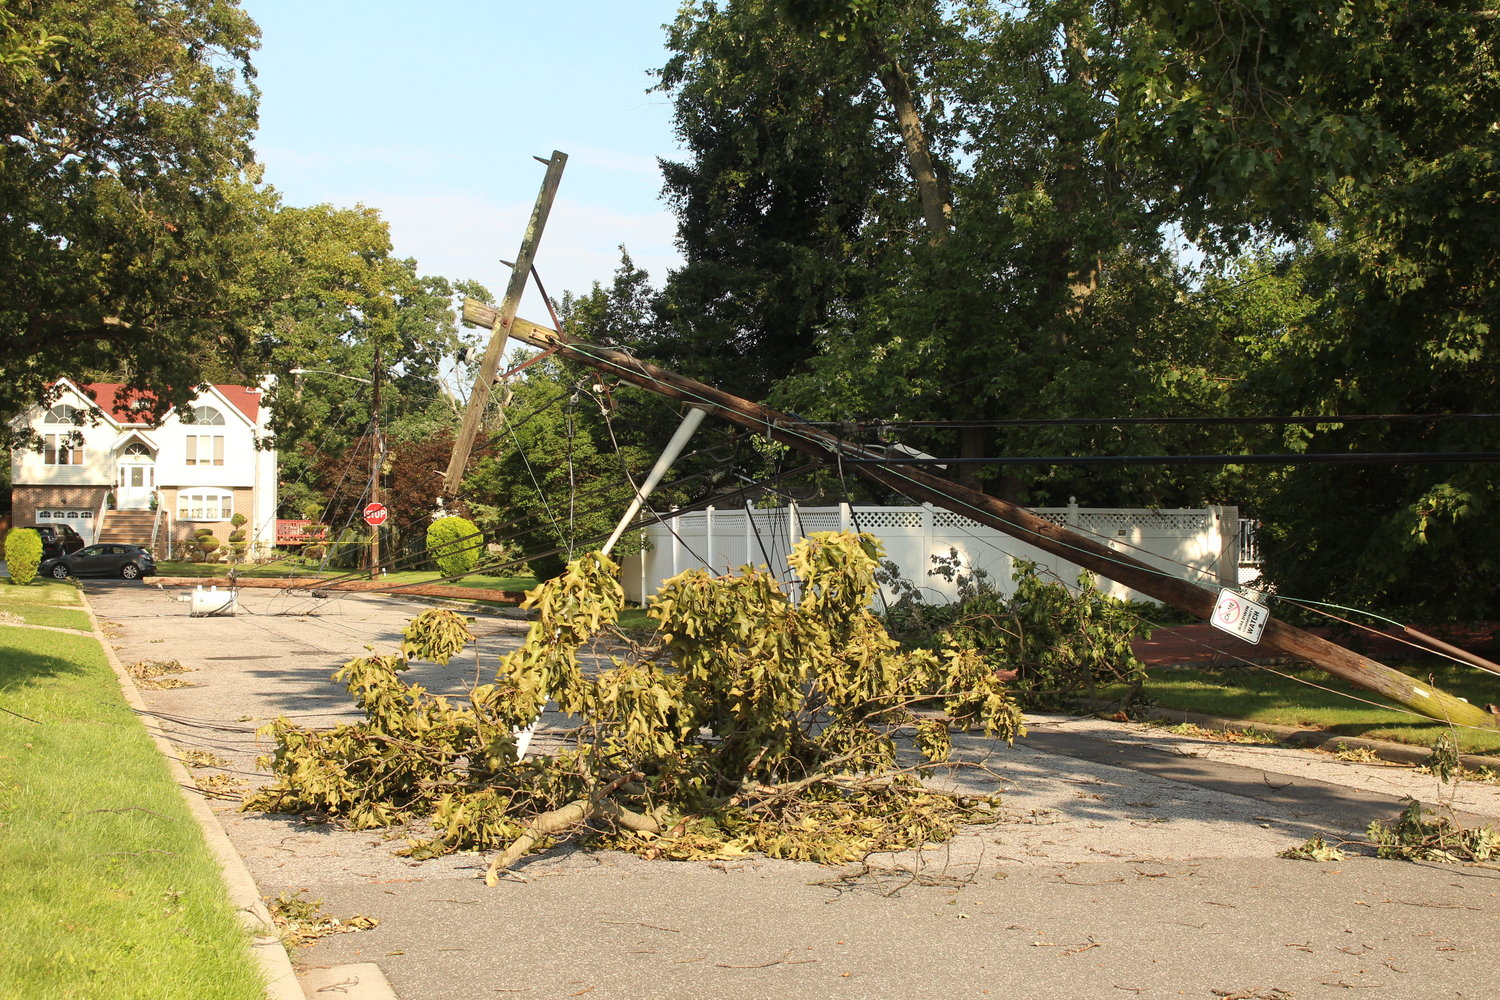 On Alexander Place in Baldwin, a large tree took down power lines and a transformer, leaving the homeowners on the block without power or hot water and low-hanging wires on their lawns and houses.